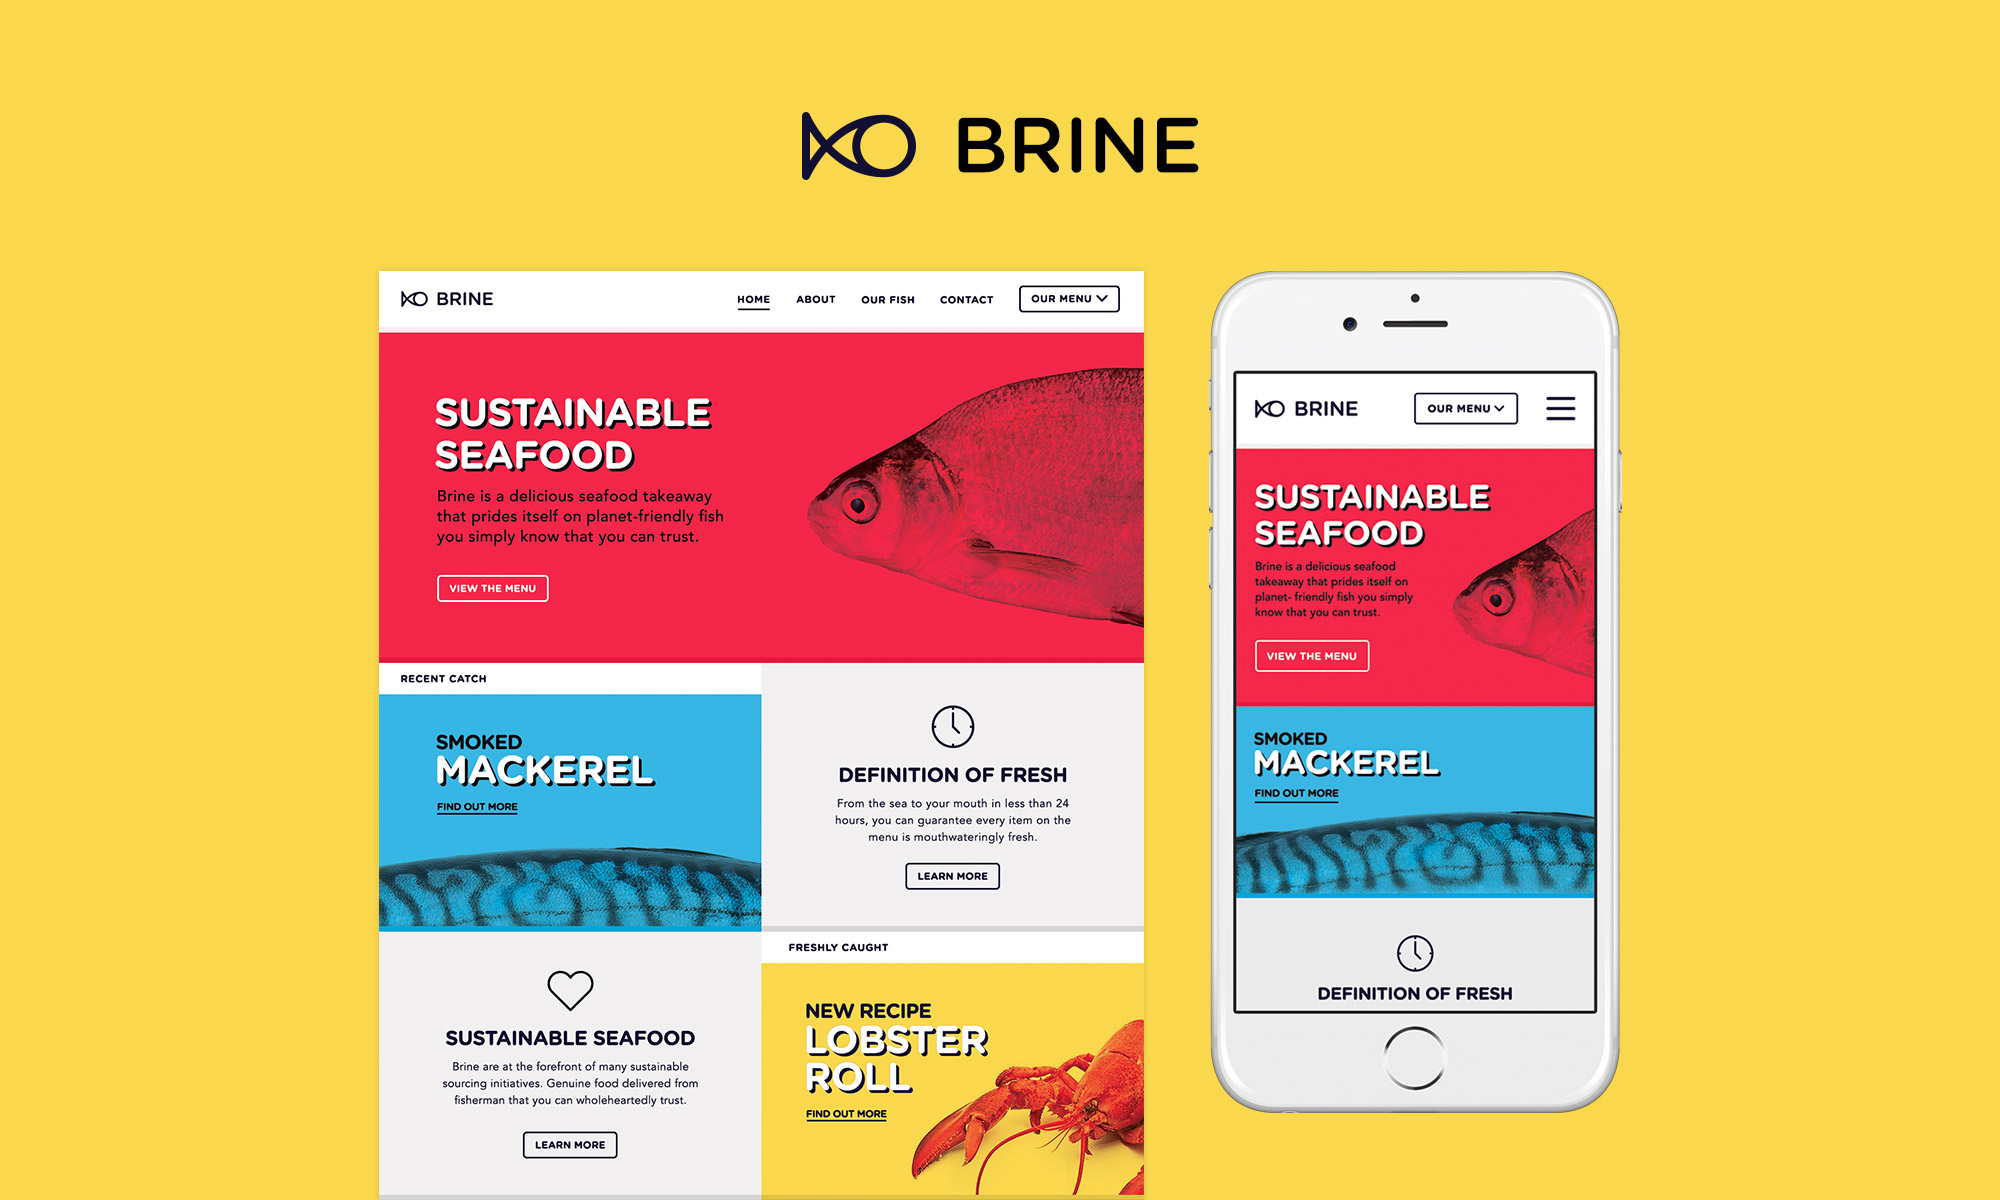 A look at the Brine website and logo.